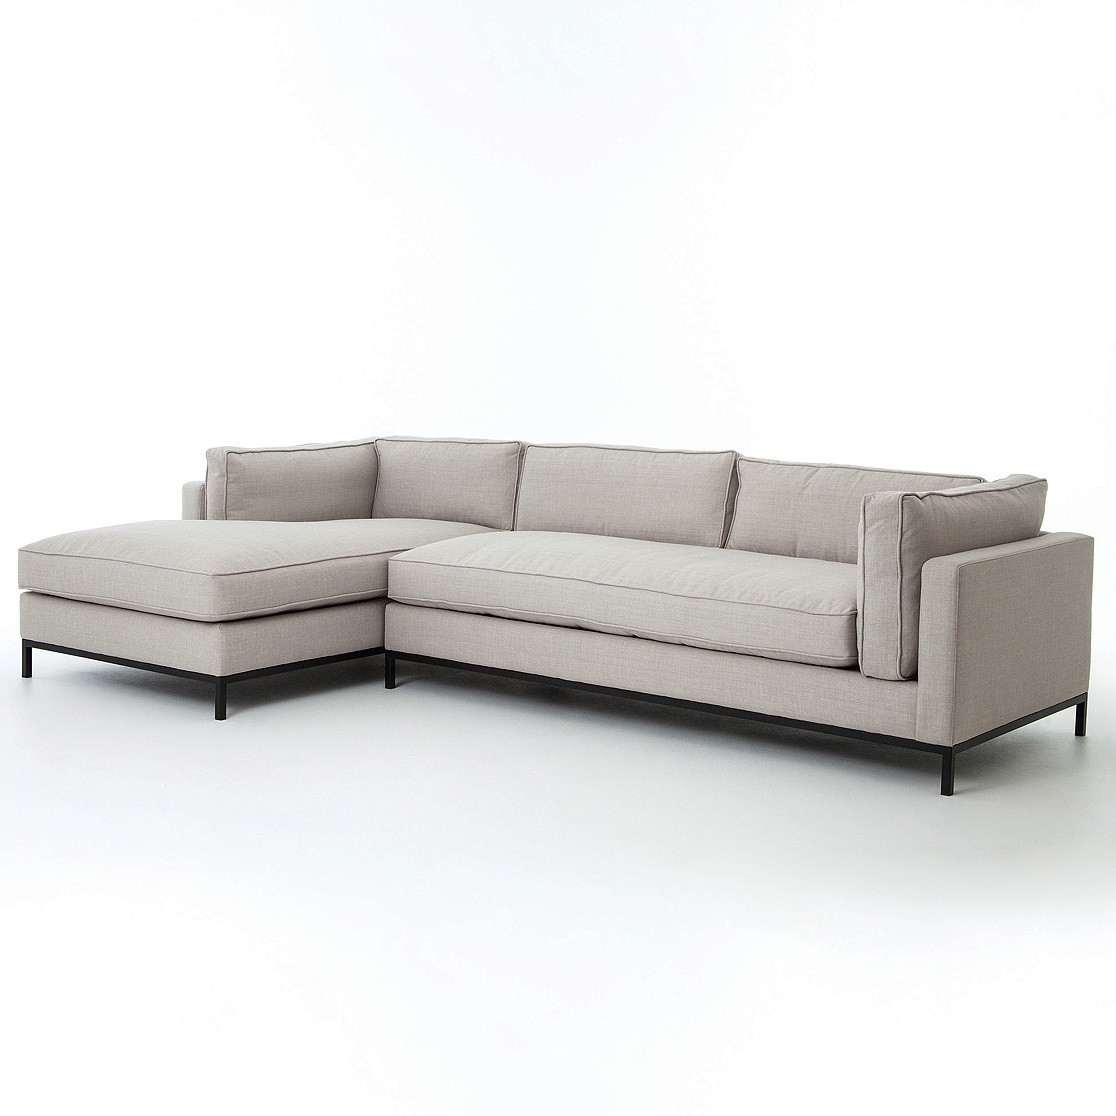 Diamond Modern White Leather U Shaped Sectional Sofa W: Grammercy Linen Upholstered Modern 2 Piece Sectional Sofa